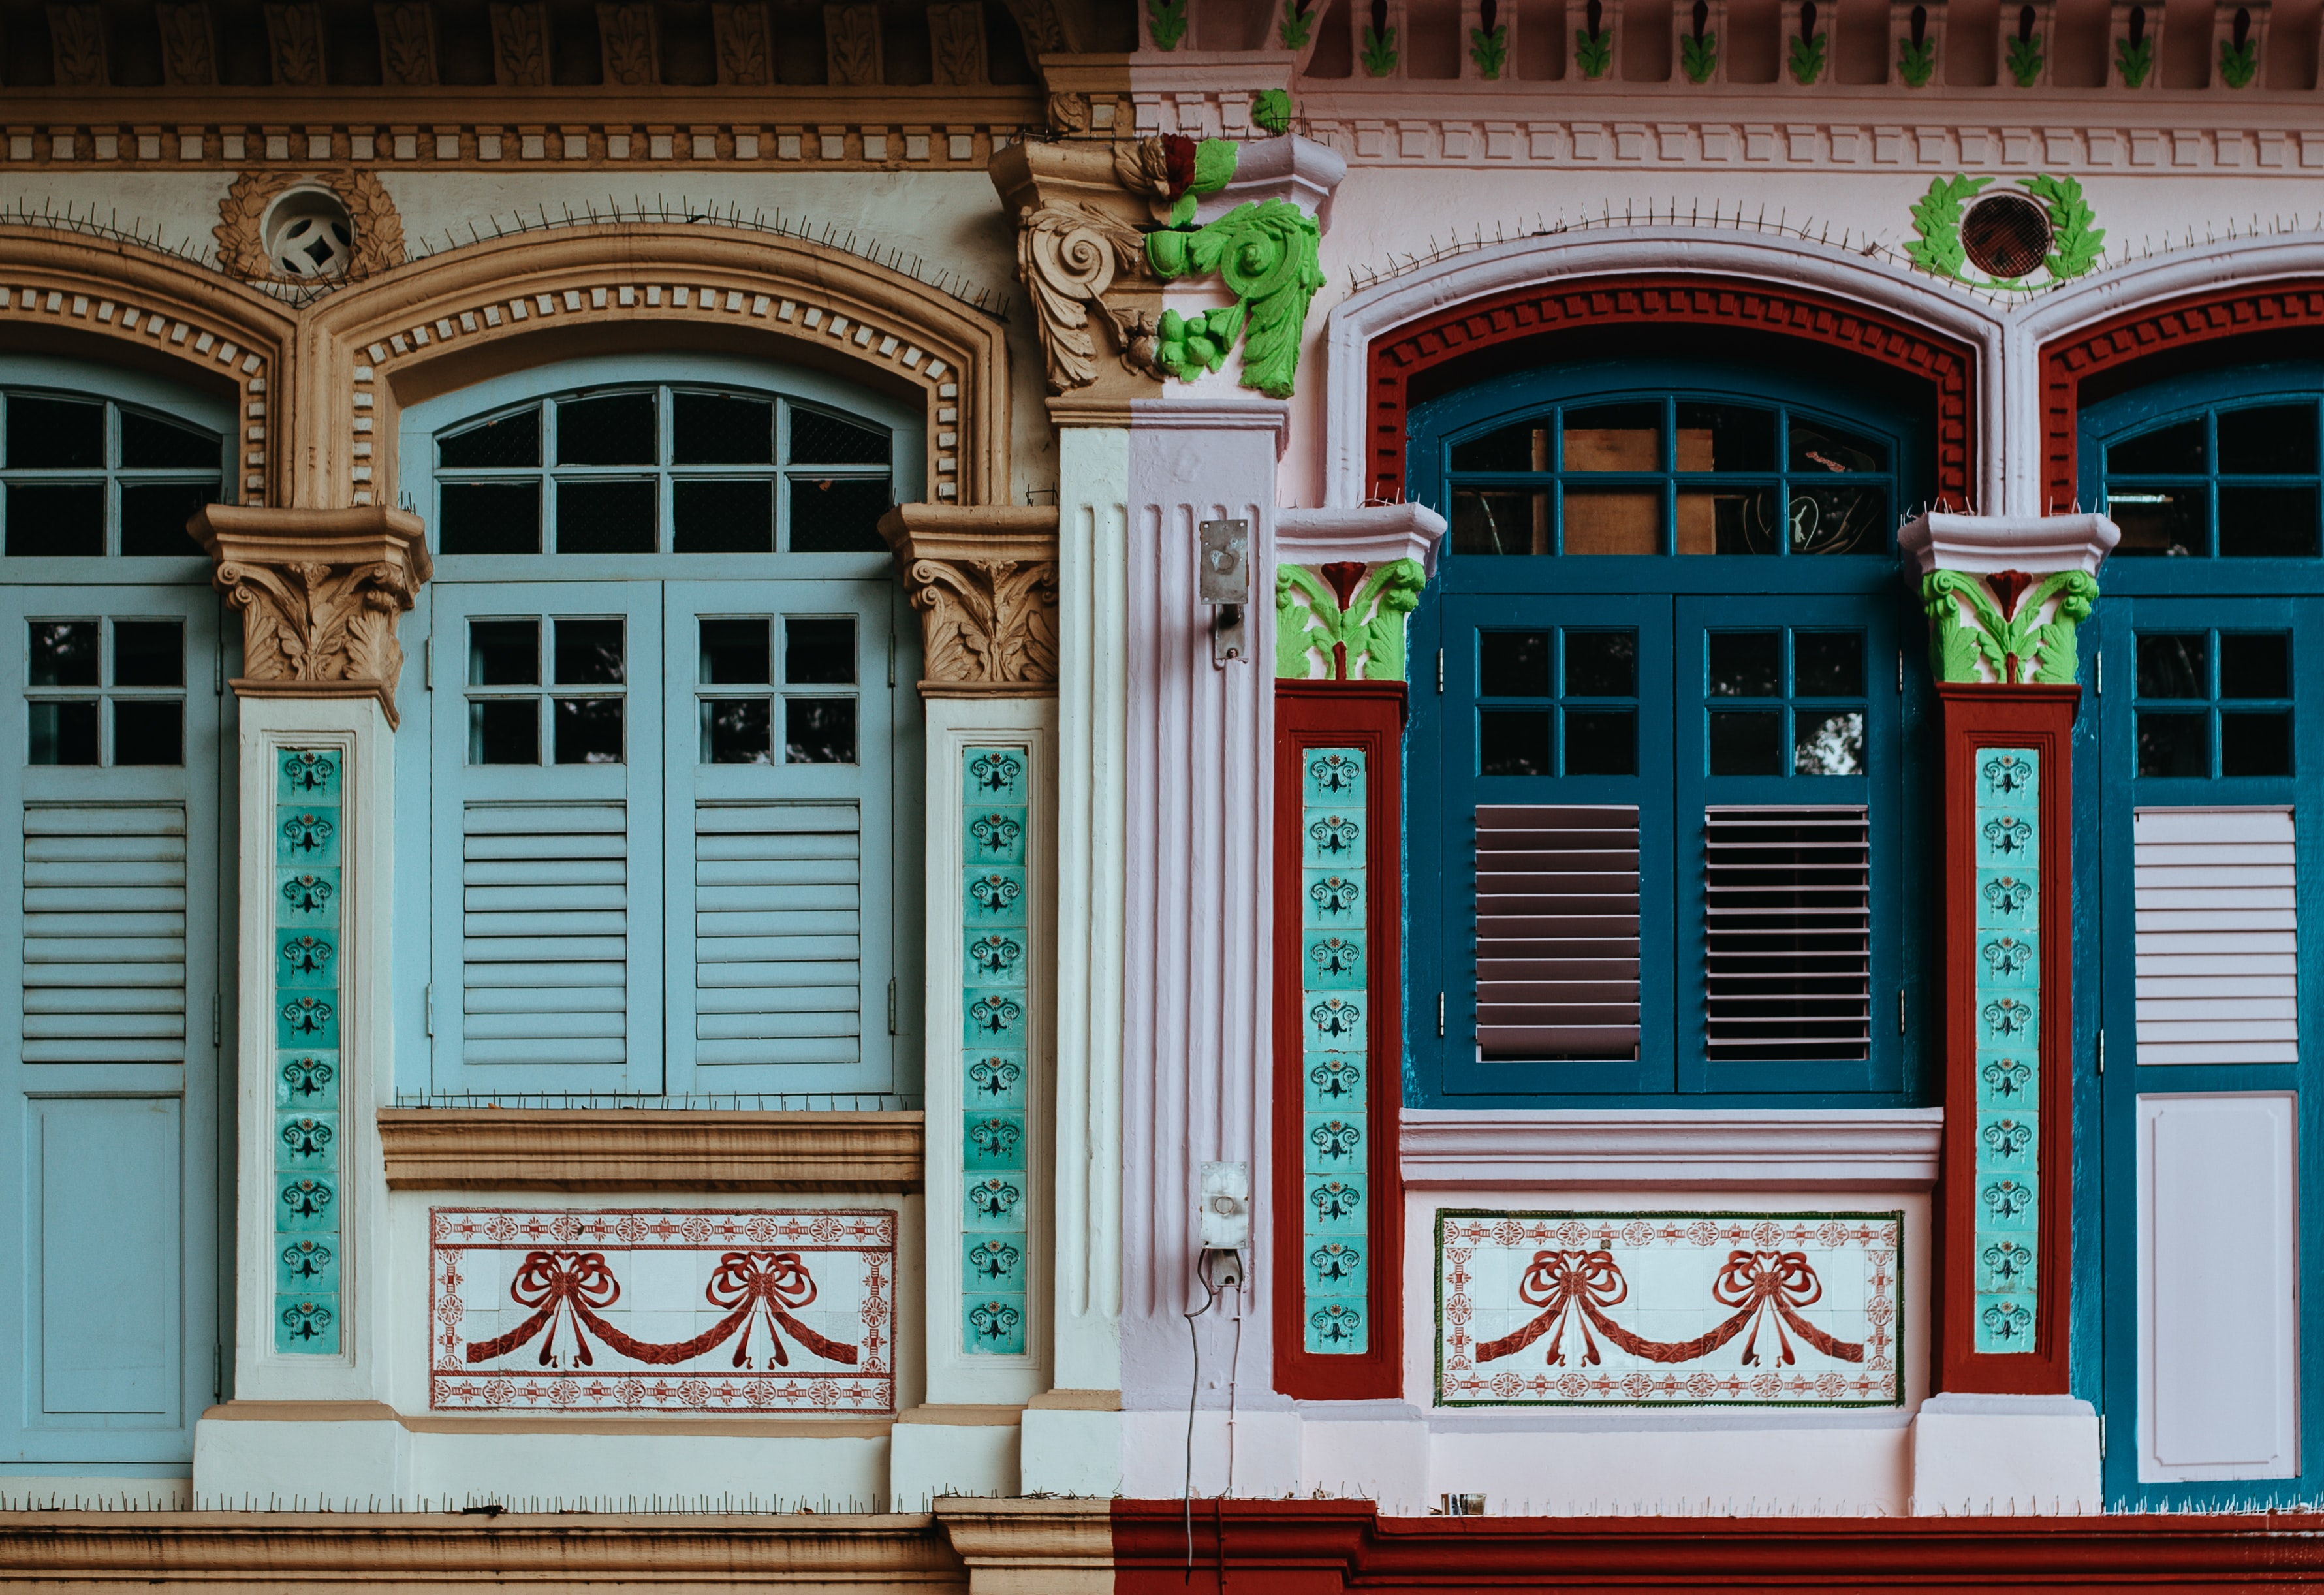 Colorful house windows with decorative pillars between them